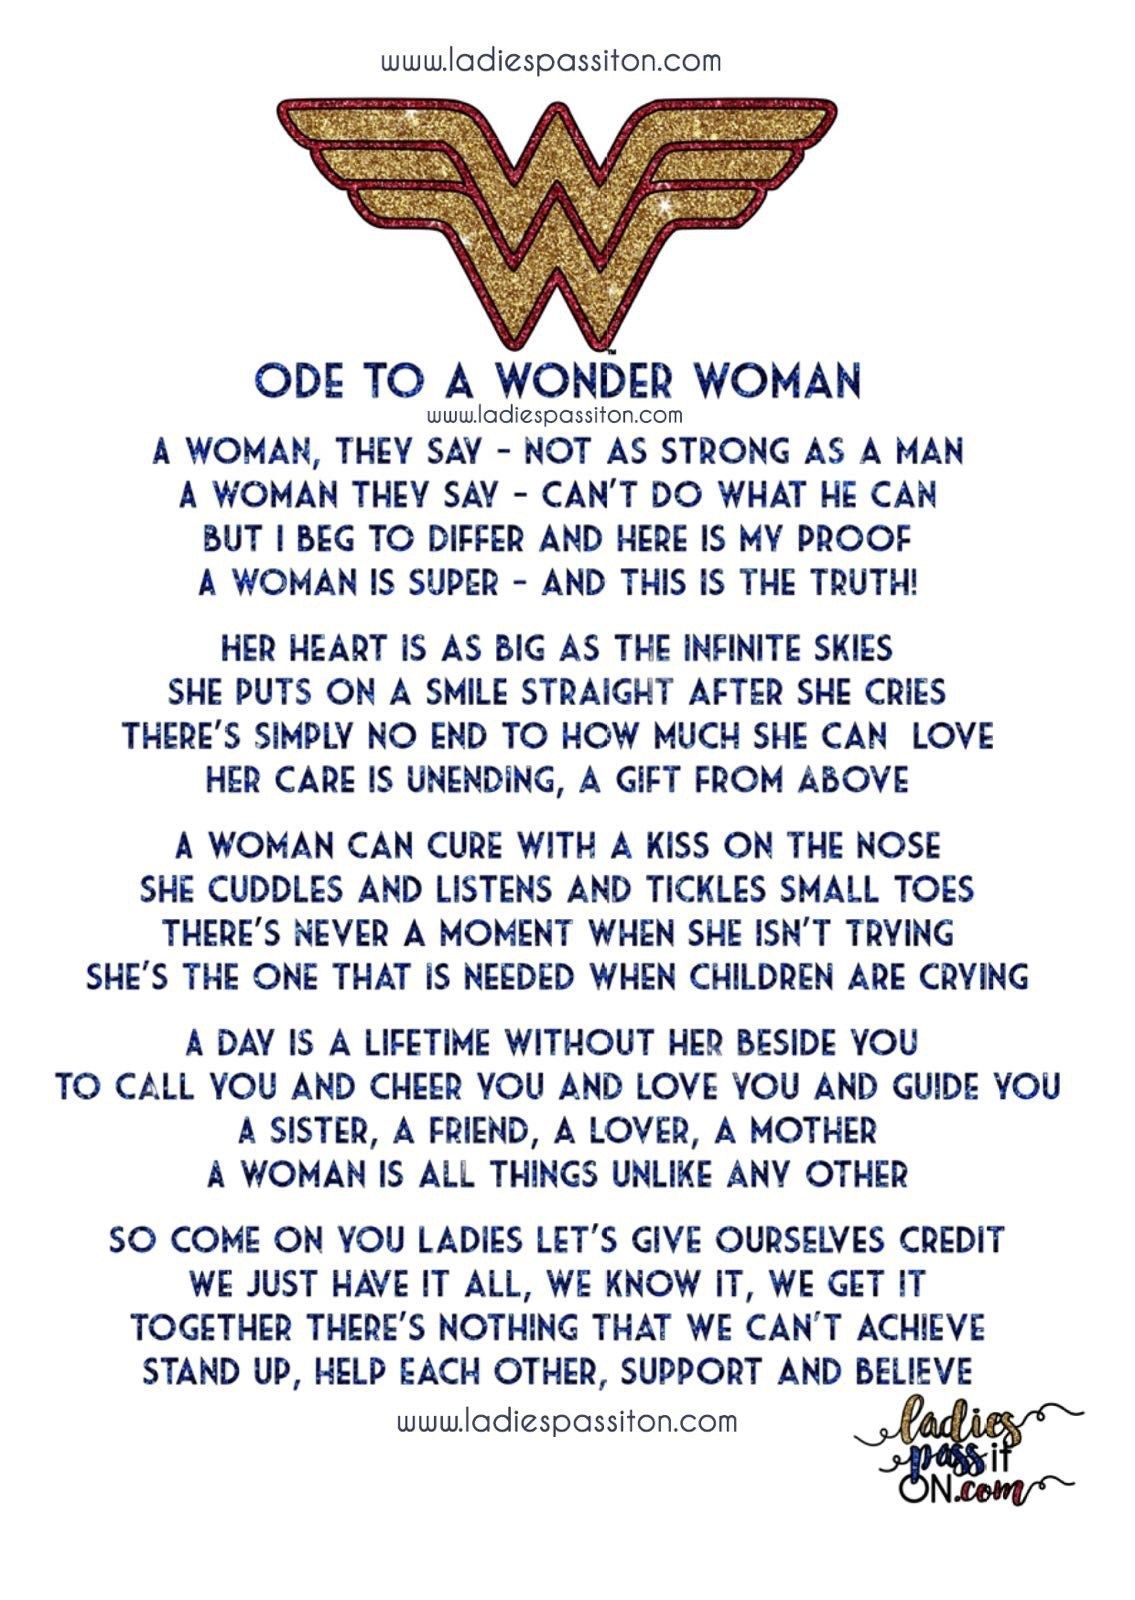 Ode To A Wonder Woman Ladies Pass It On Wonder Woman Quotes Wonder Woman Woman Quotes